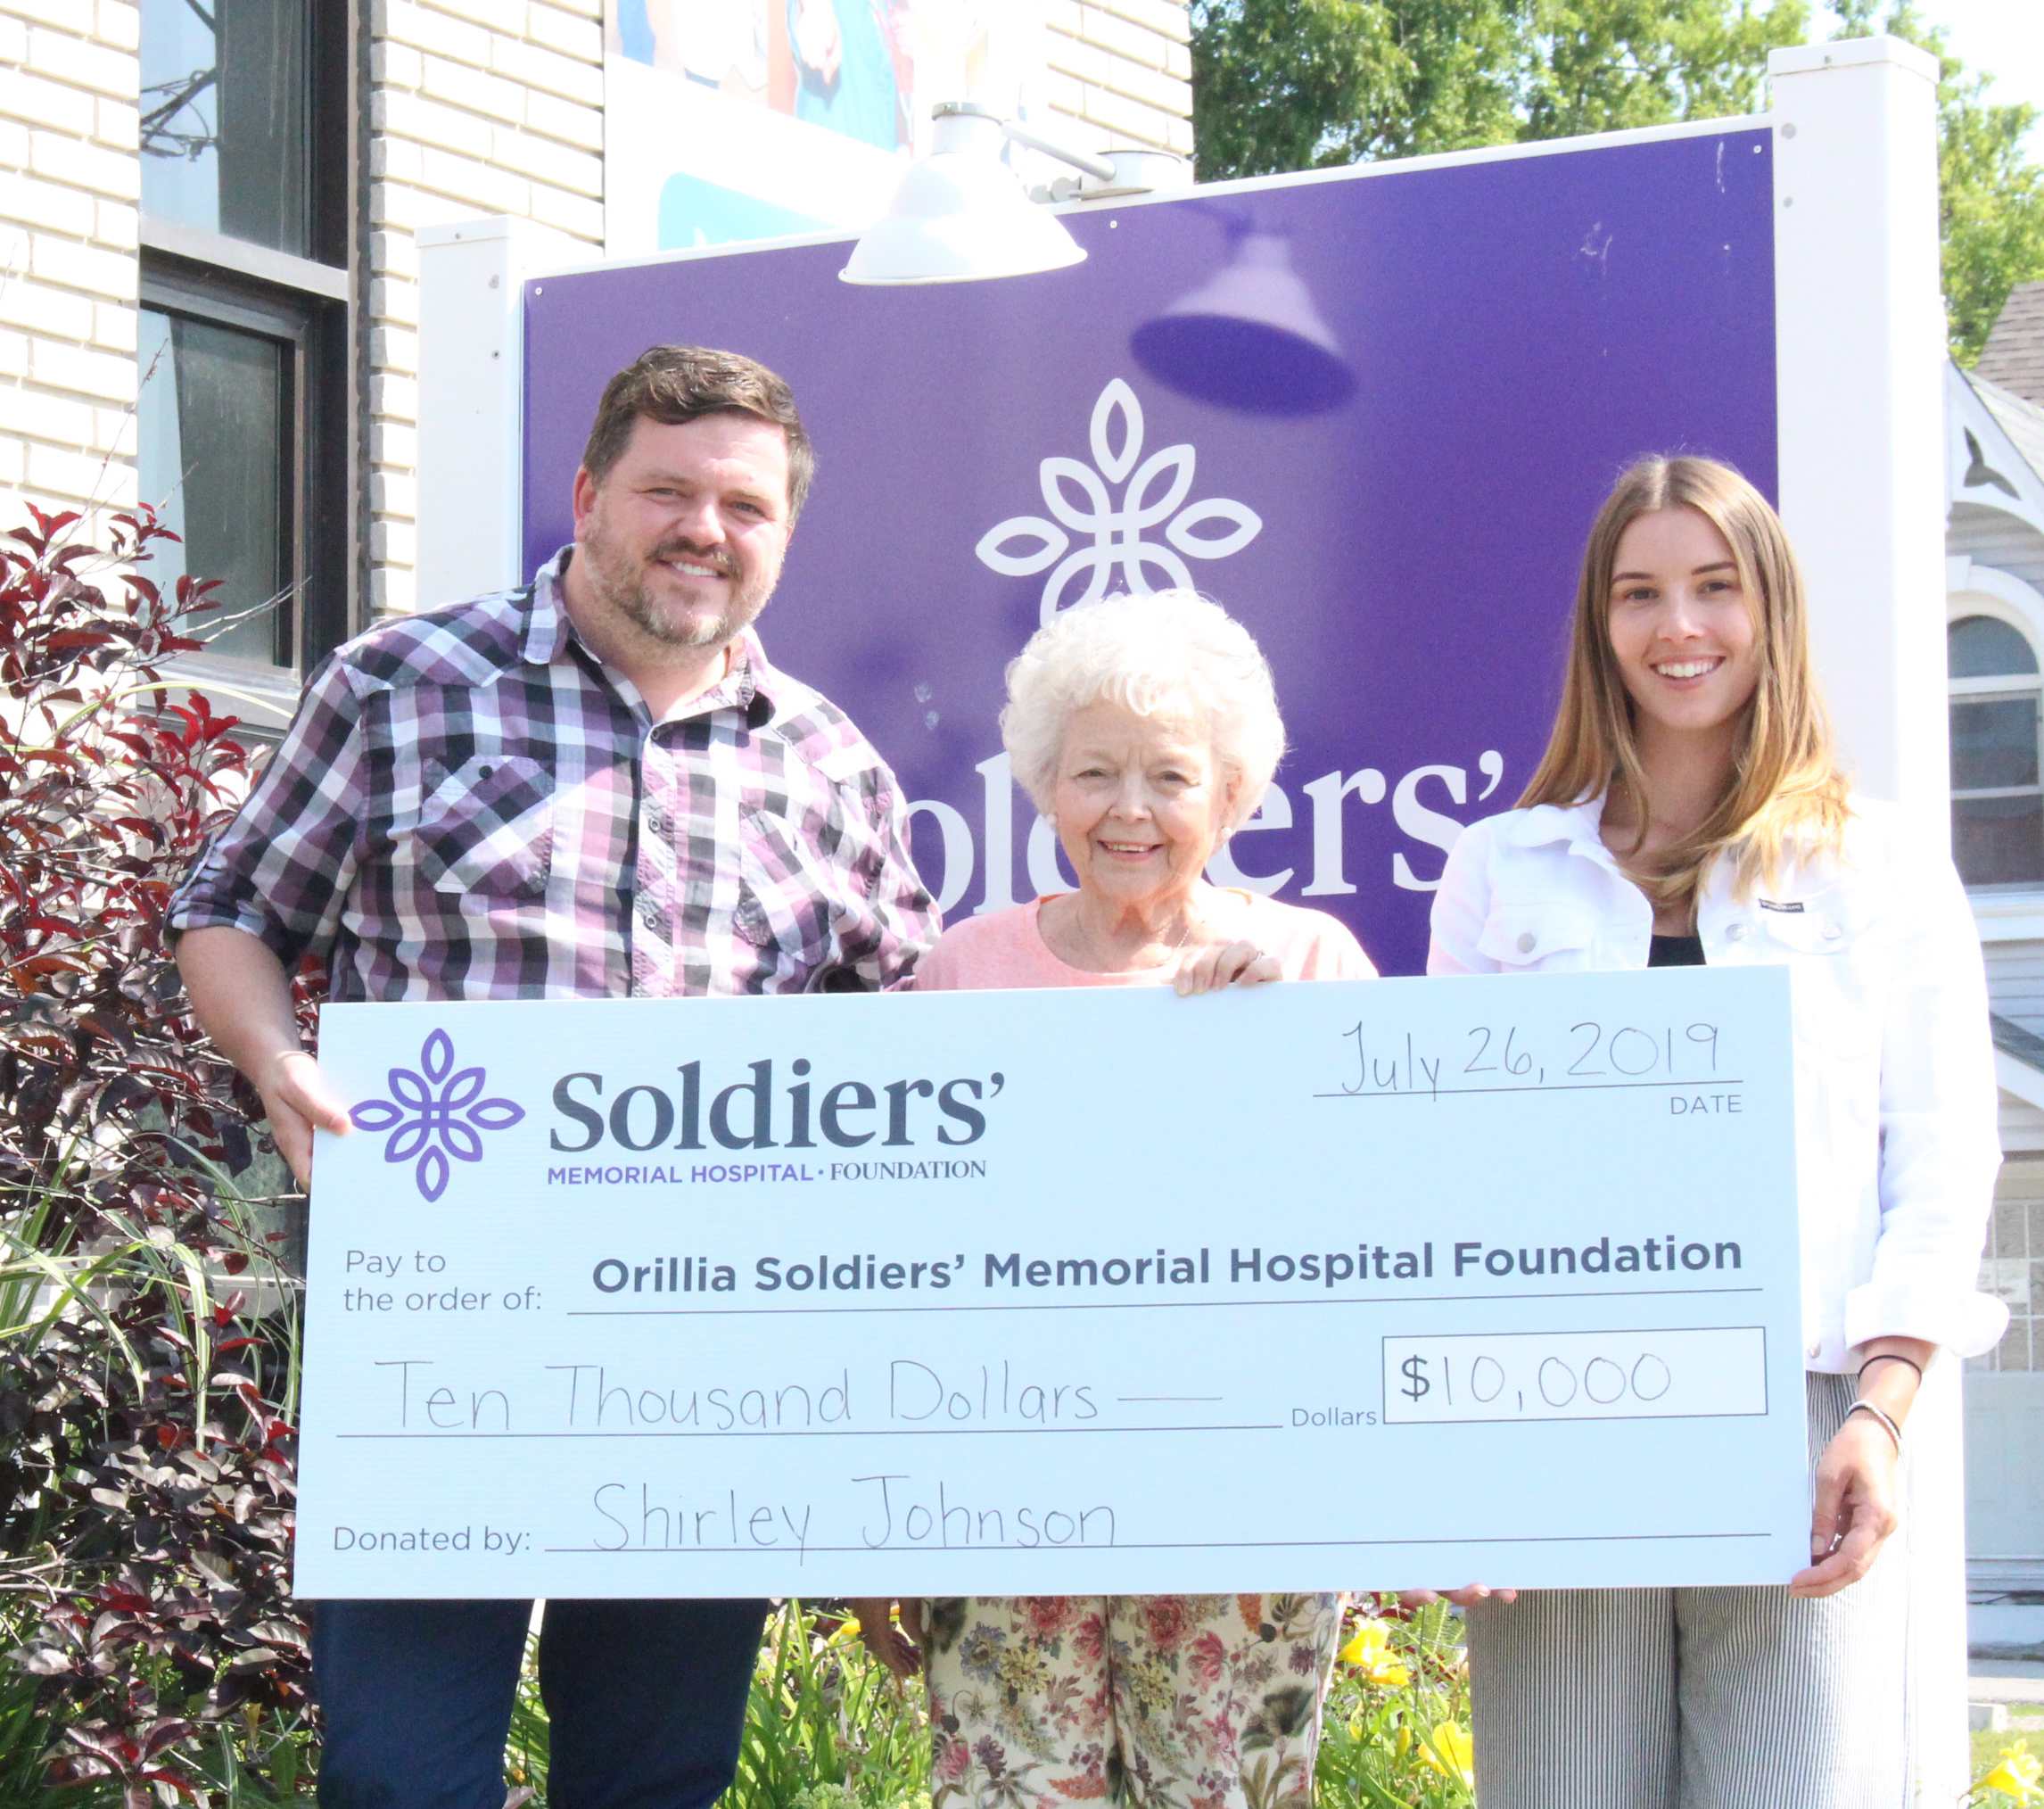 Shirley Johnson (centre) presents the Orillia Soldiers' Memorial Hospital Foundation with a cheque for $10,000 to refresh the Birthing and New Families Services Family Waiting Room to Mark Riczu, OSMH Foundation Executive Director (left) and Brittany Wilson, OSMH Foundation Development Officer, Major Gifts.